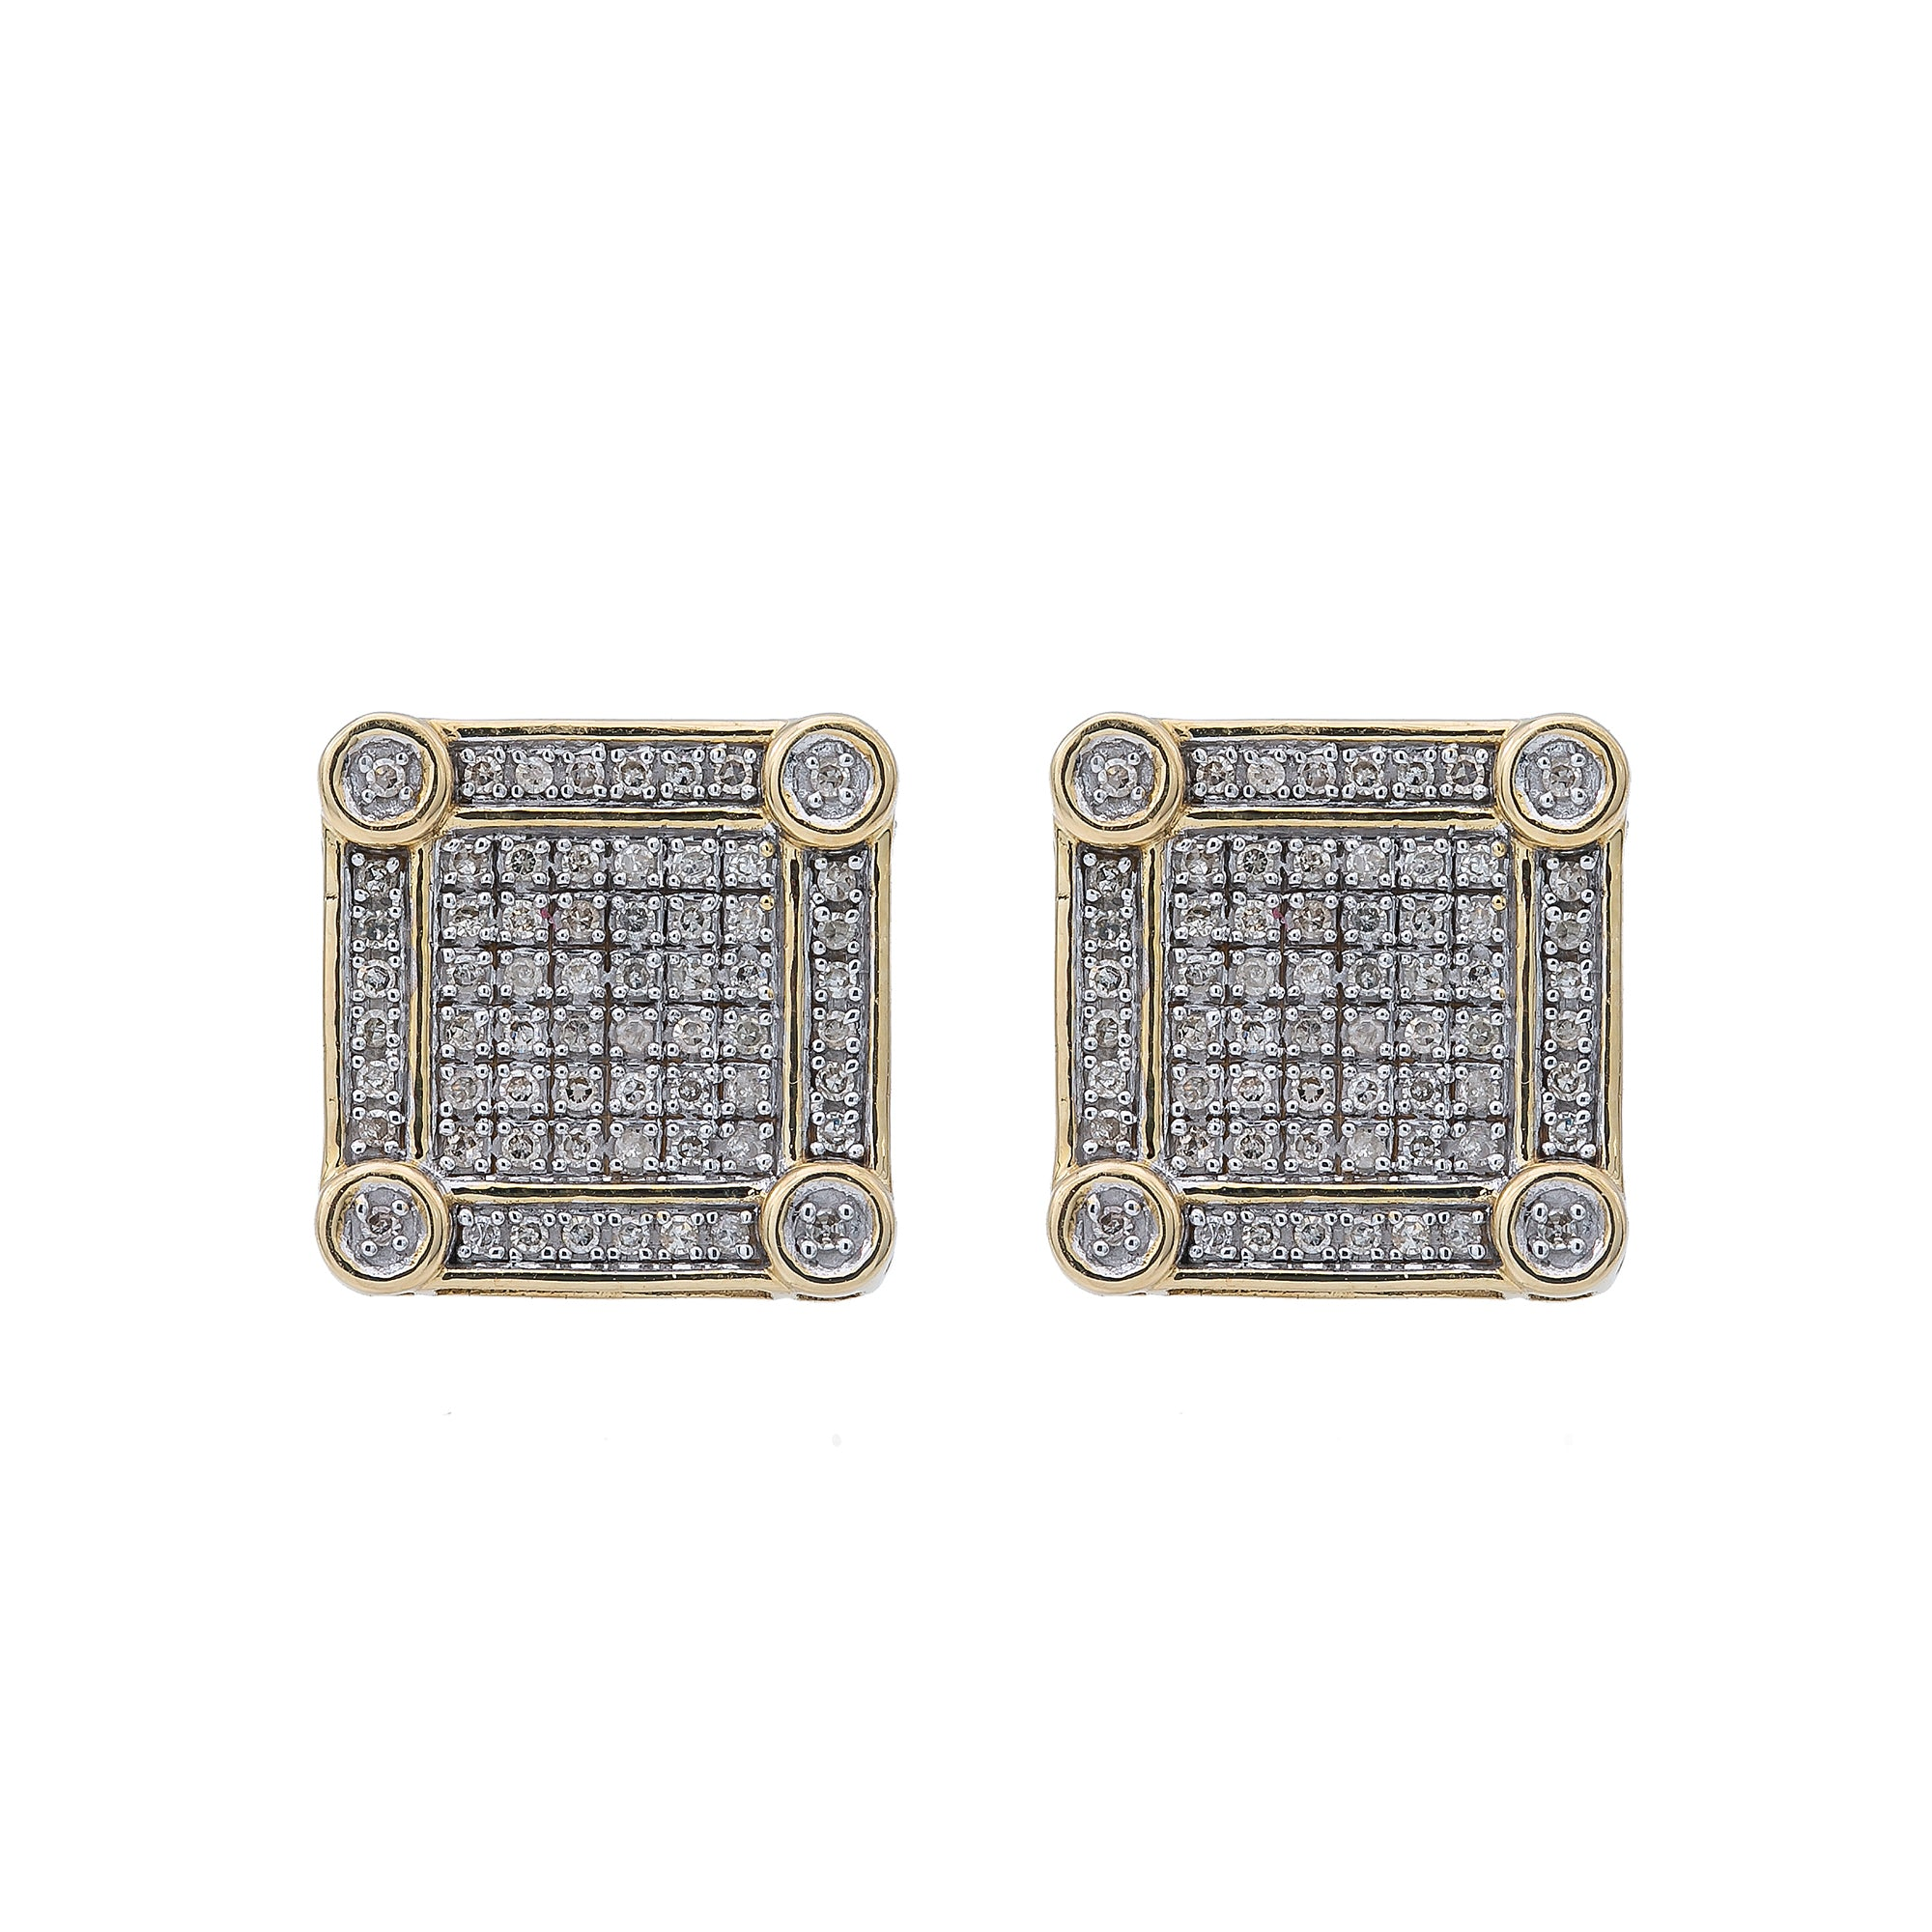 10K Yellow Gold Unisex Earrings with 0.65 CT Diamond